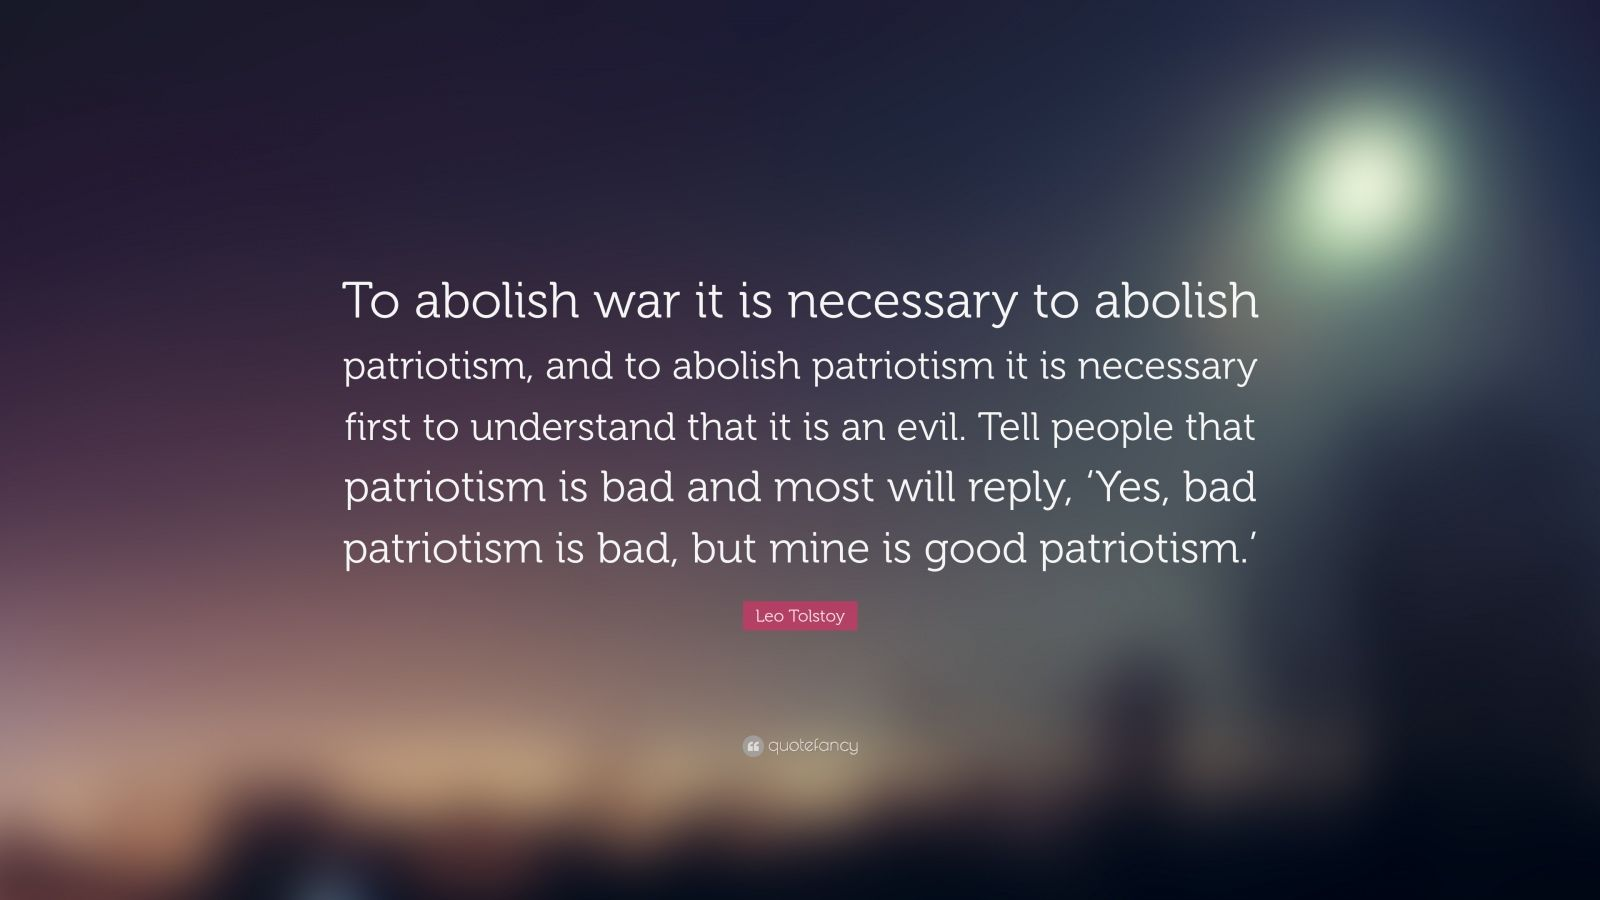 "Leo Tolstoy Quote: ""To abolish war it is necessary to abolish patriotism, and to abolish patriotism it is necessary first to understand that it is an evil. Tell people that patriotism is bad and most will reply, 'Yes, bad patriotism is bad, but mine is good patriotism.'"""